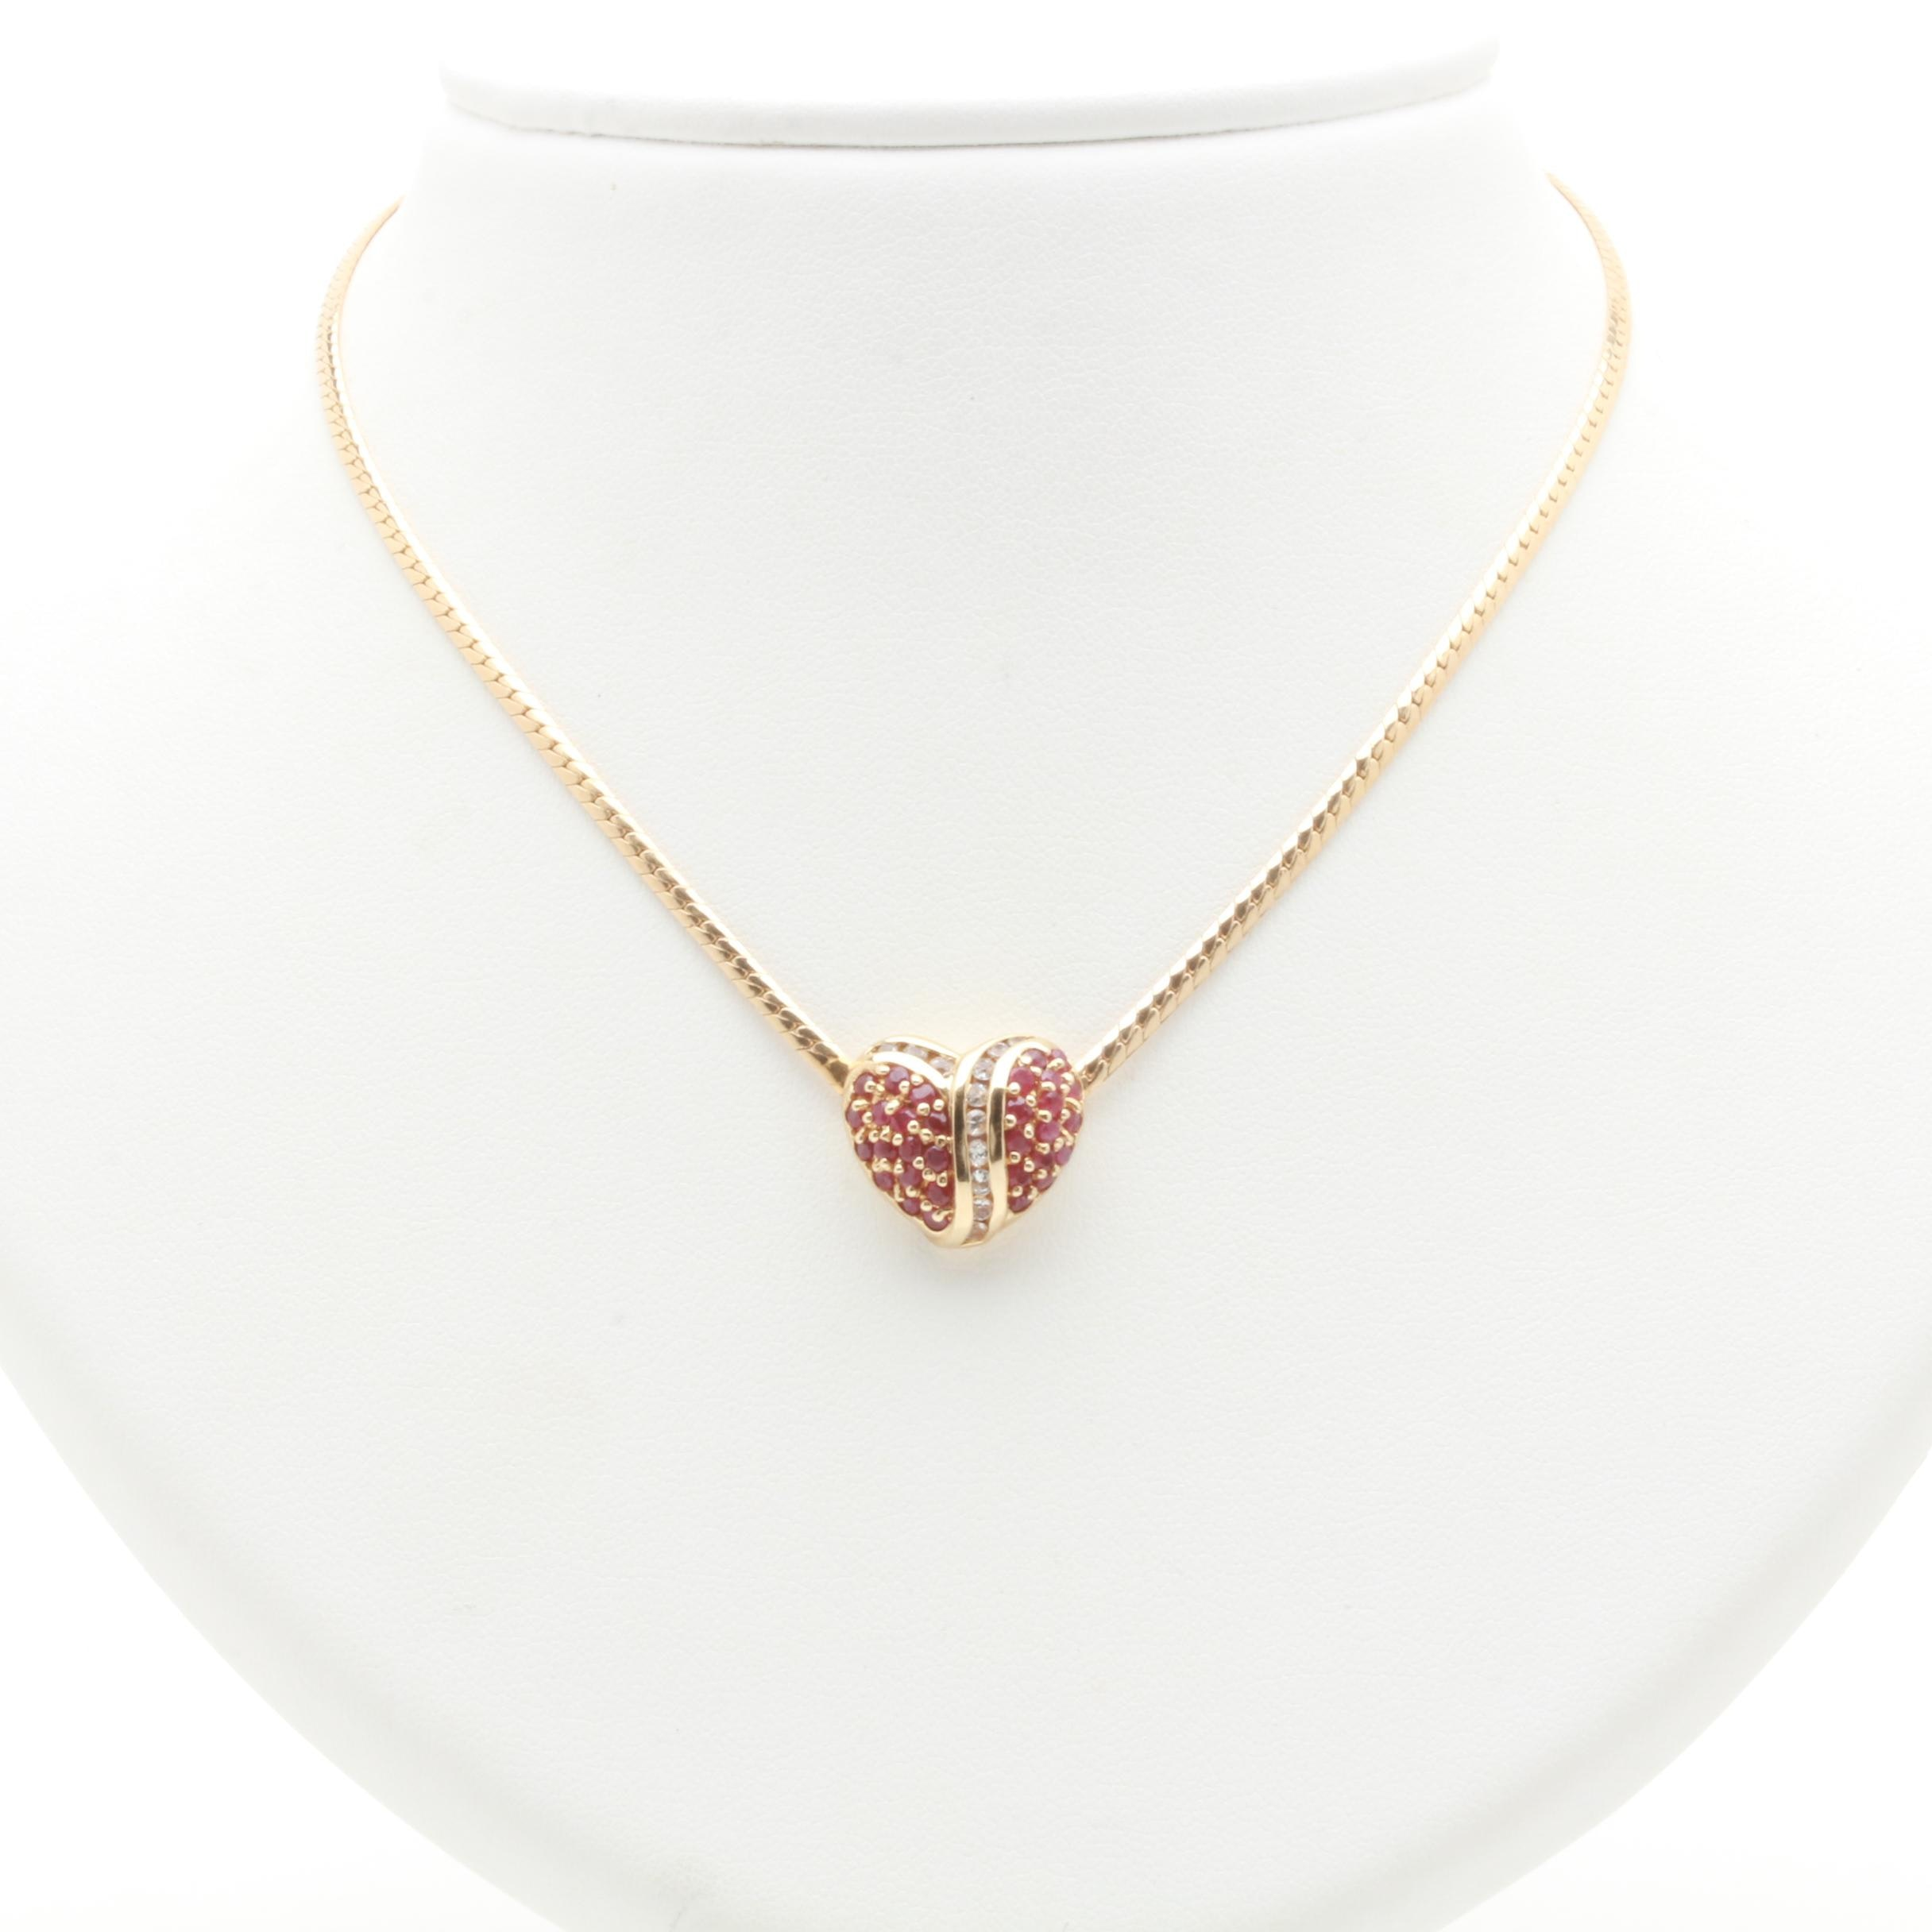 10K Yellow Gold Ruby and White Sapphire Pendant Necklace